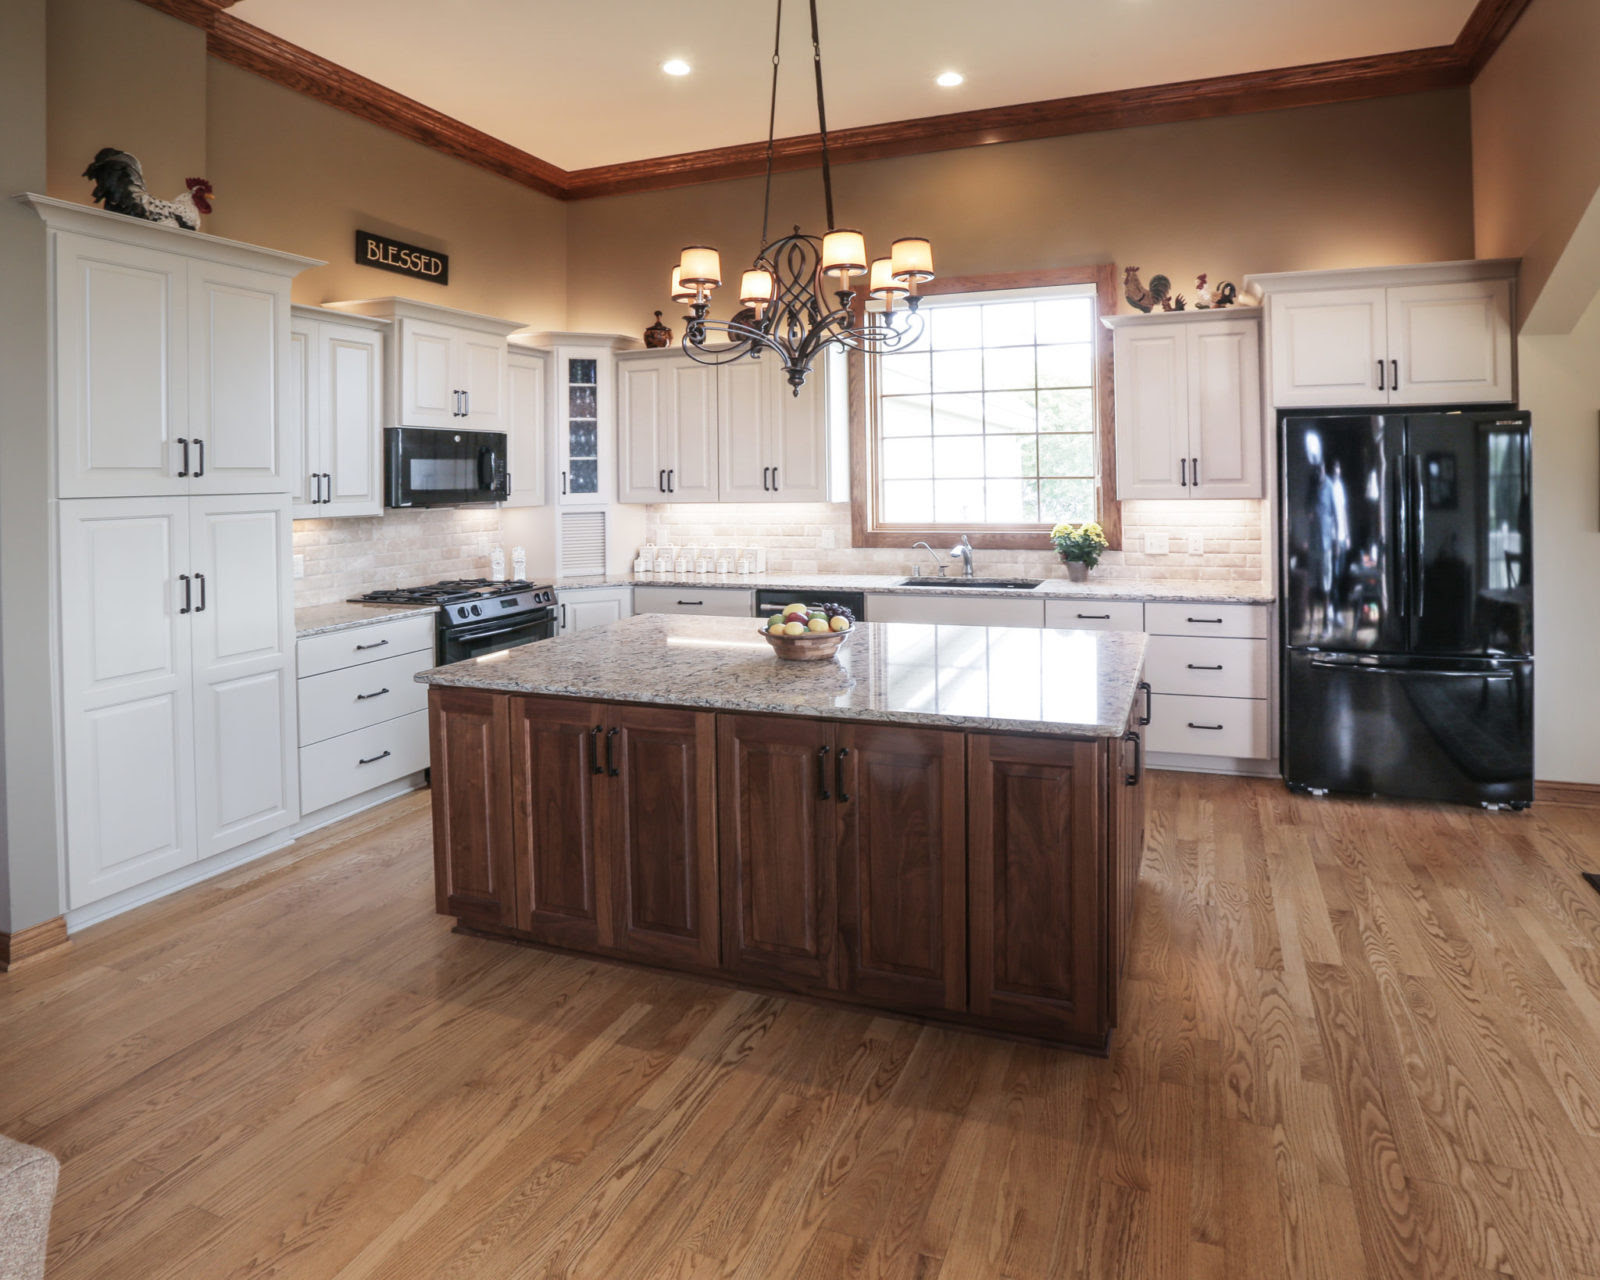 How do I update a house that is full of golden oak ...